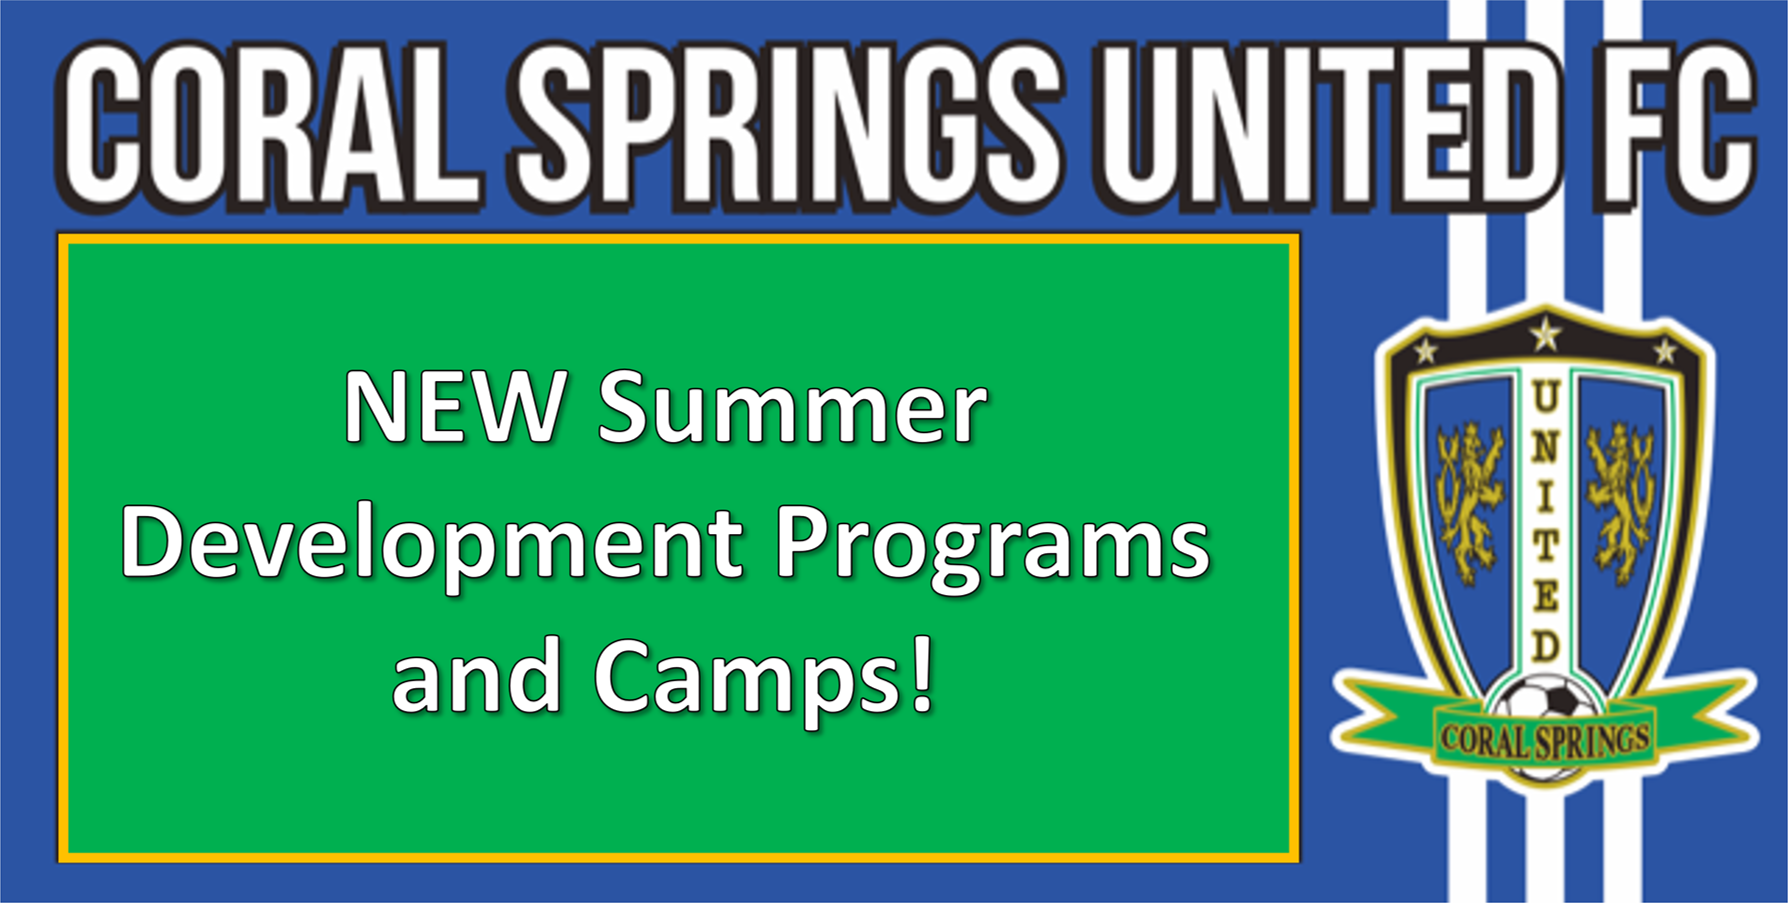 2018 Summer Development Programs and Camps